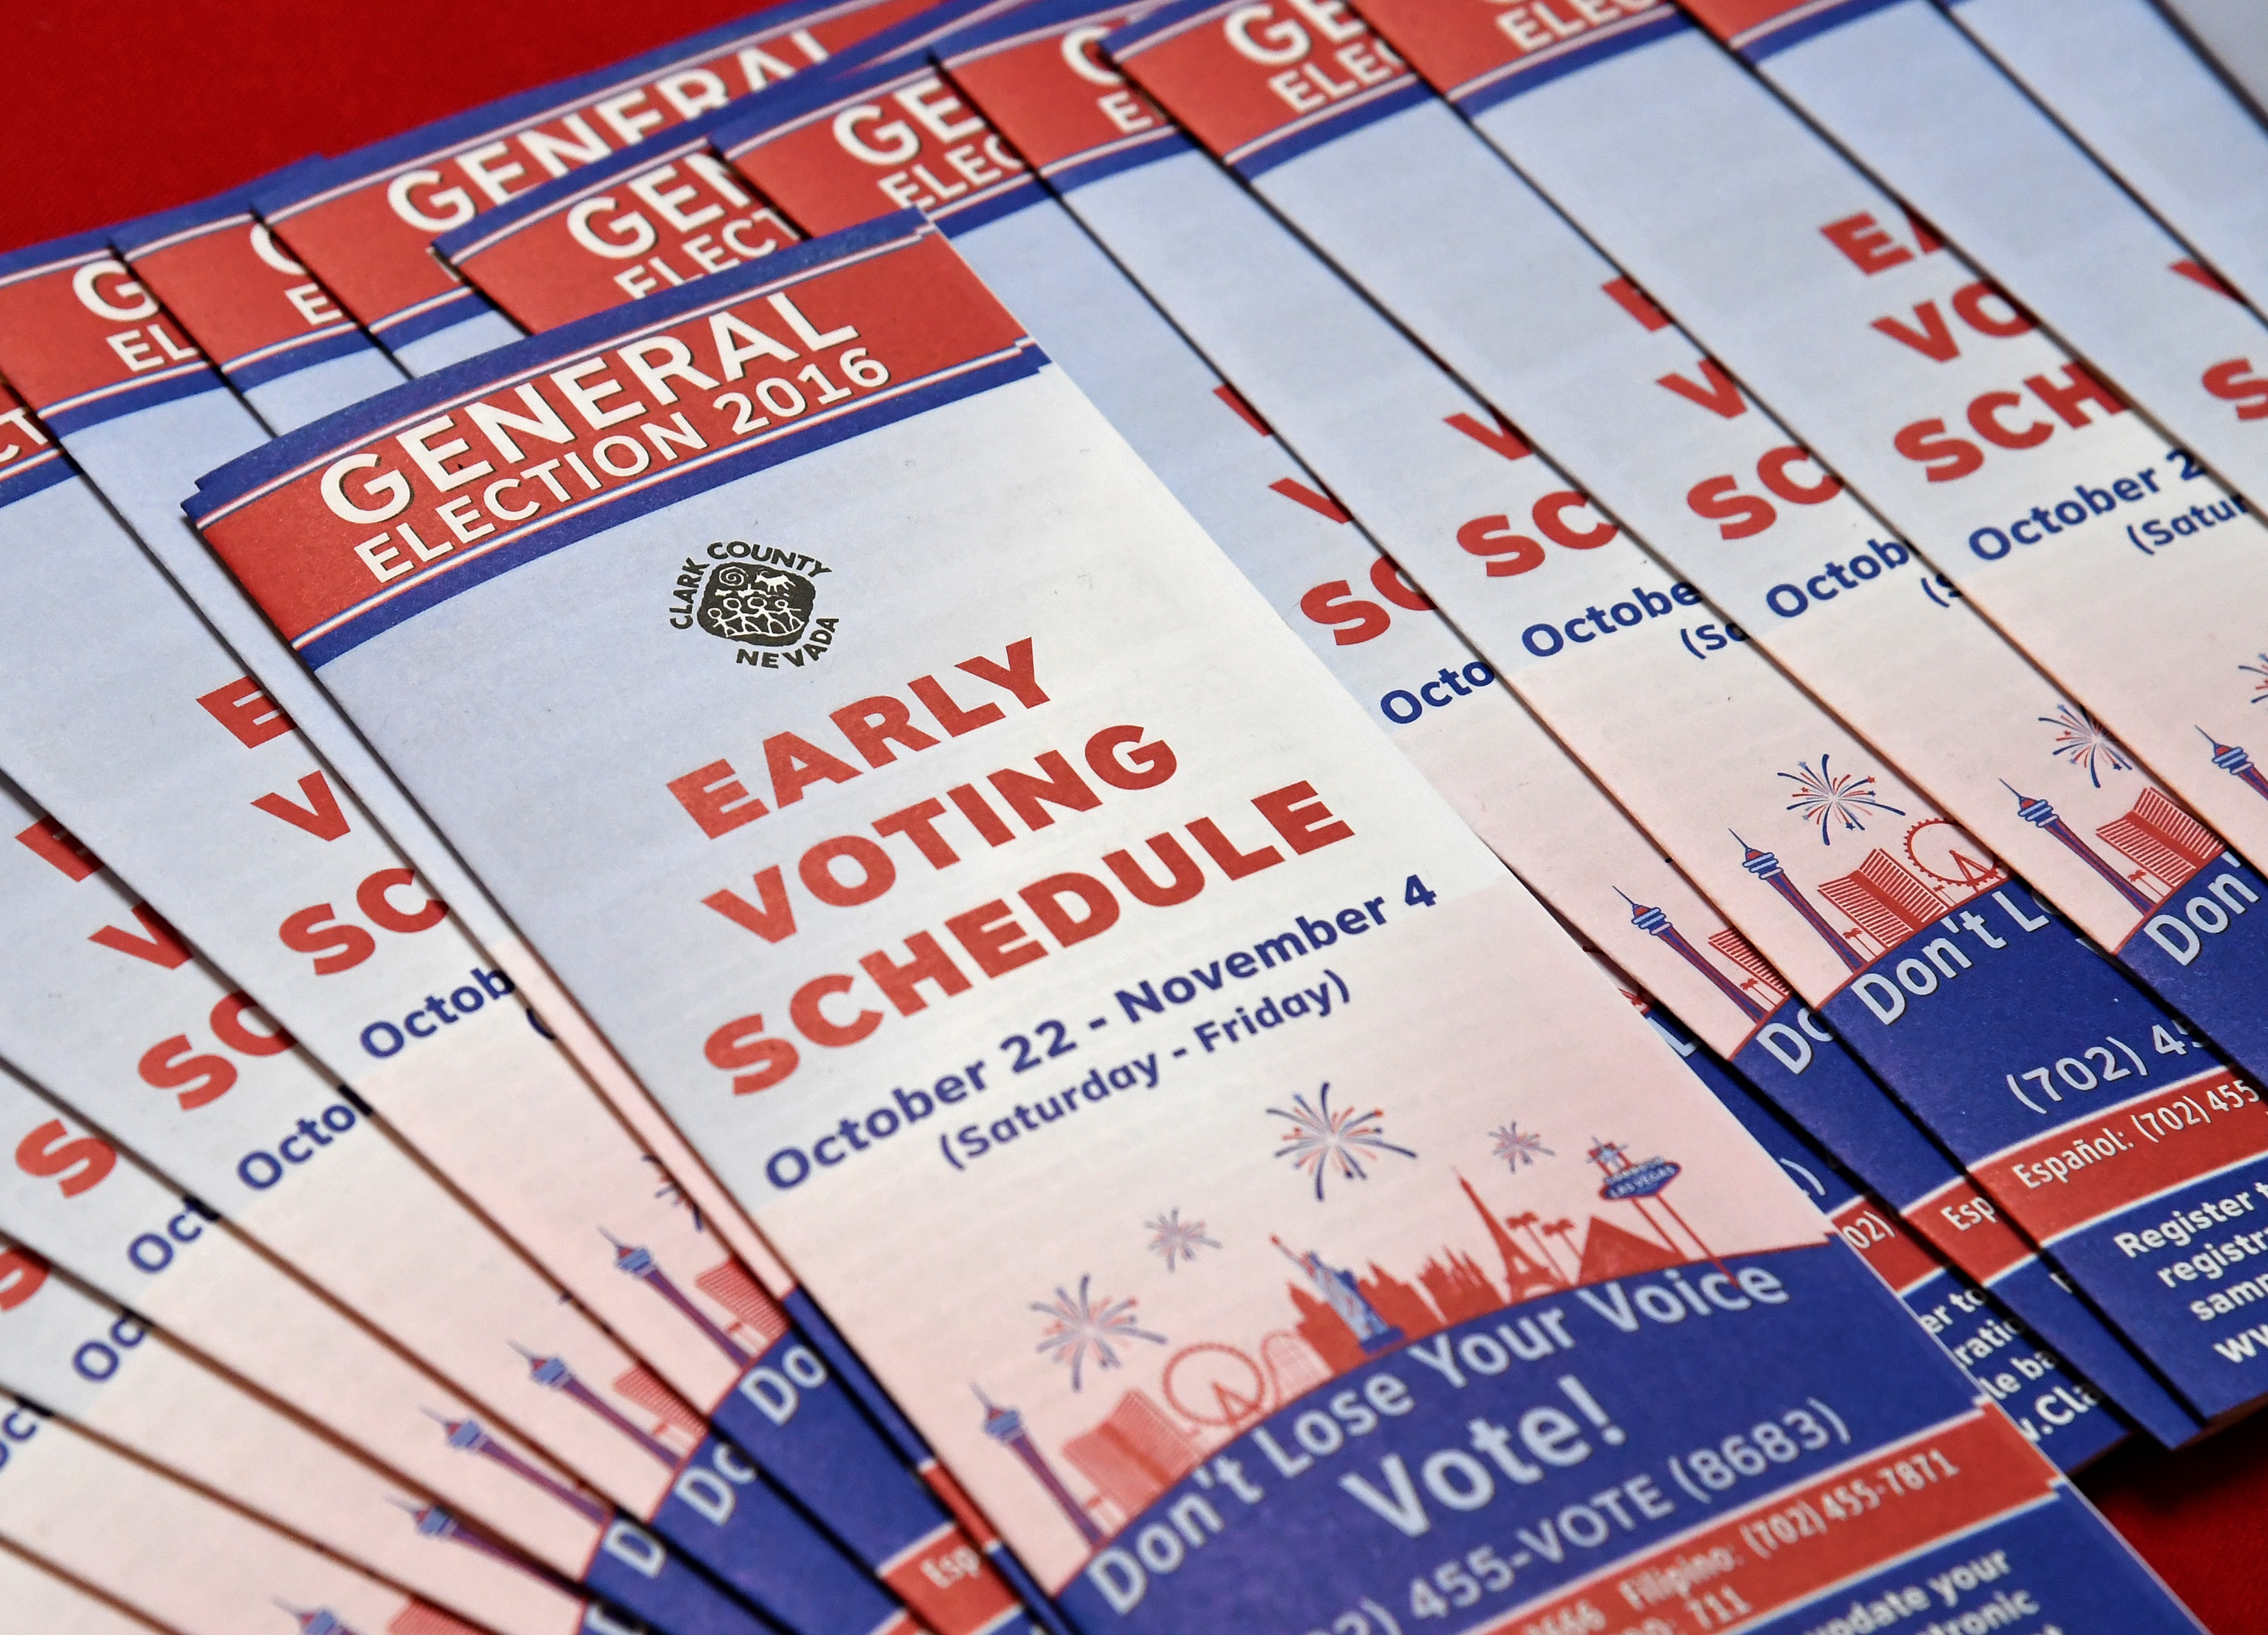 Early voting schedules are displayed at the Meadows Mall on October 26, 2016 in Las Vegas.